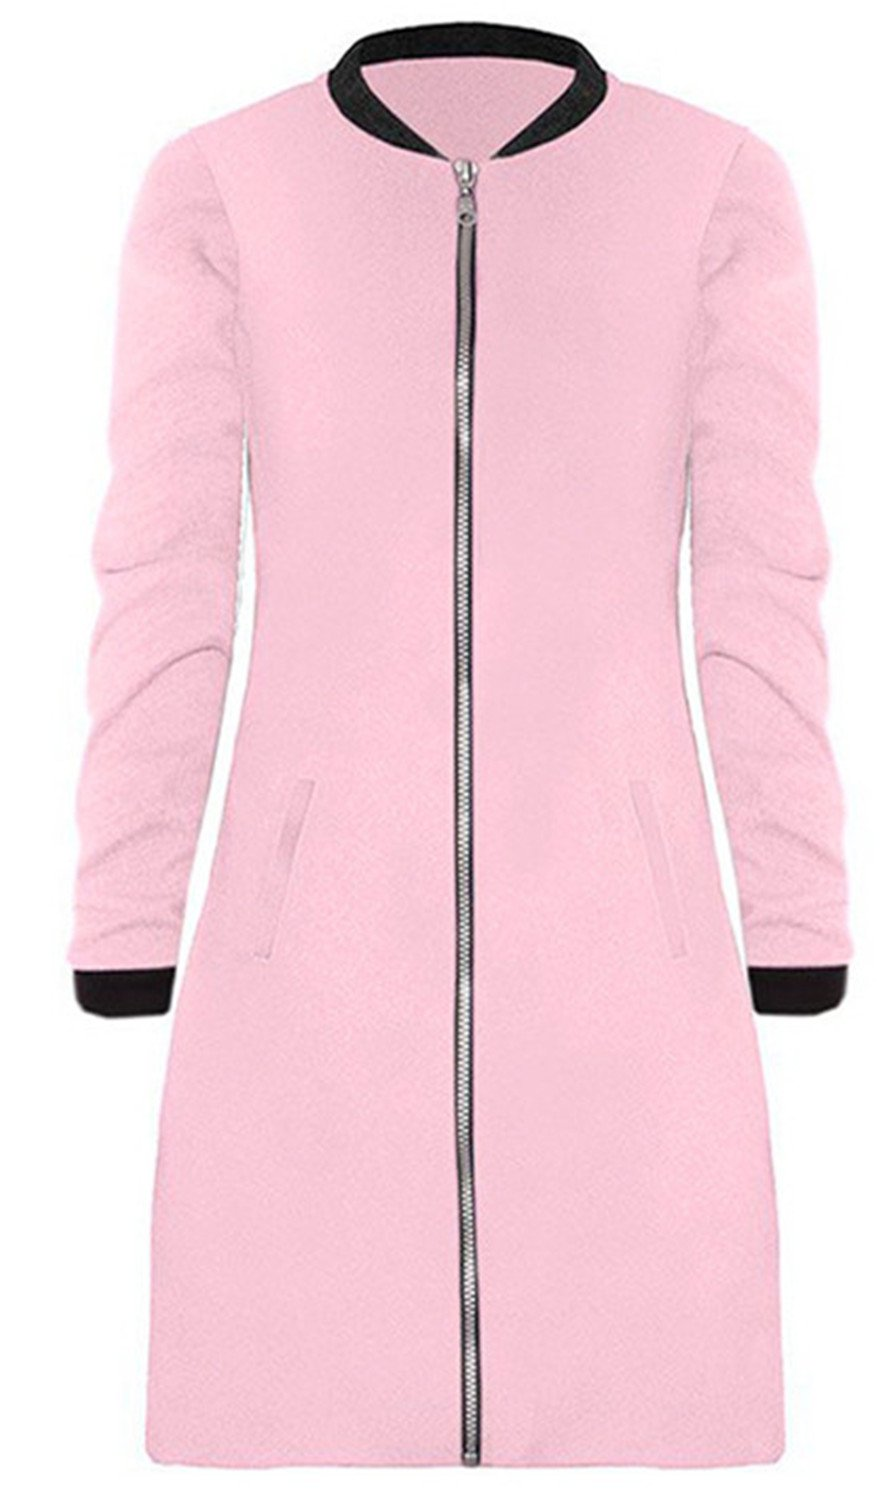 Winter Thick Warm Long Sleeve Plush Fabric Longline Overcoat Trench Duffle Coat Jacket Sweatshirt Top Zips Closure Pink L